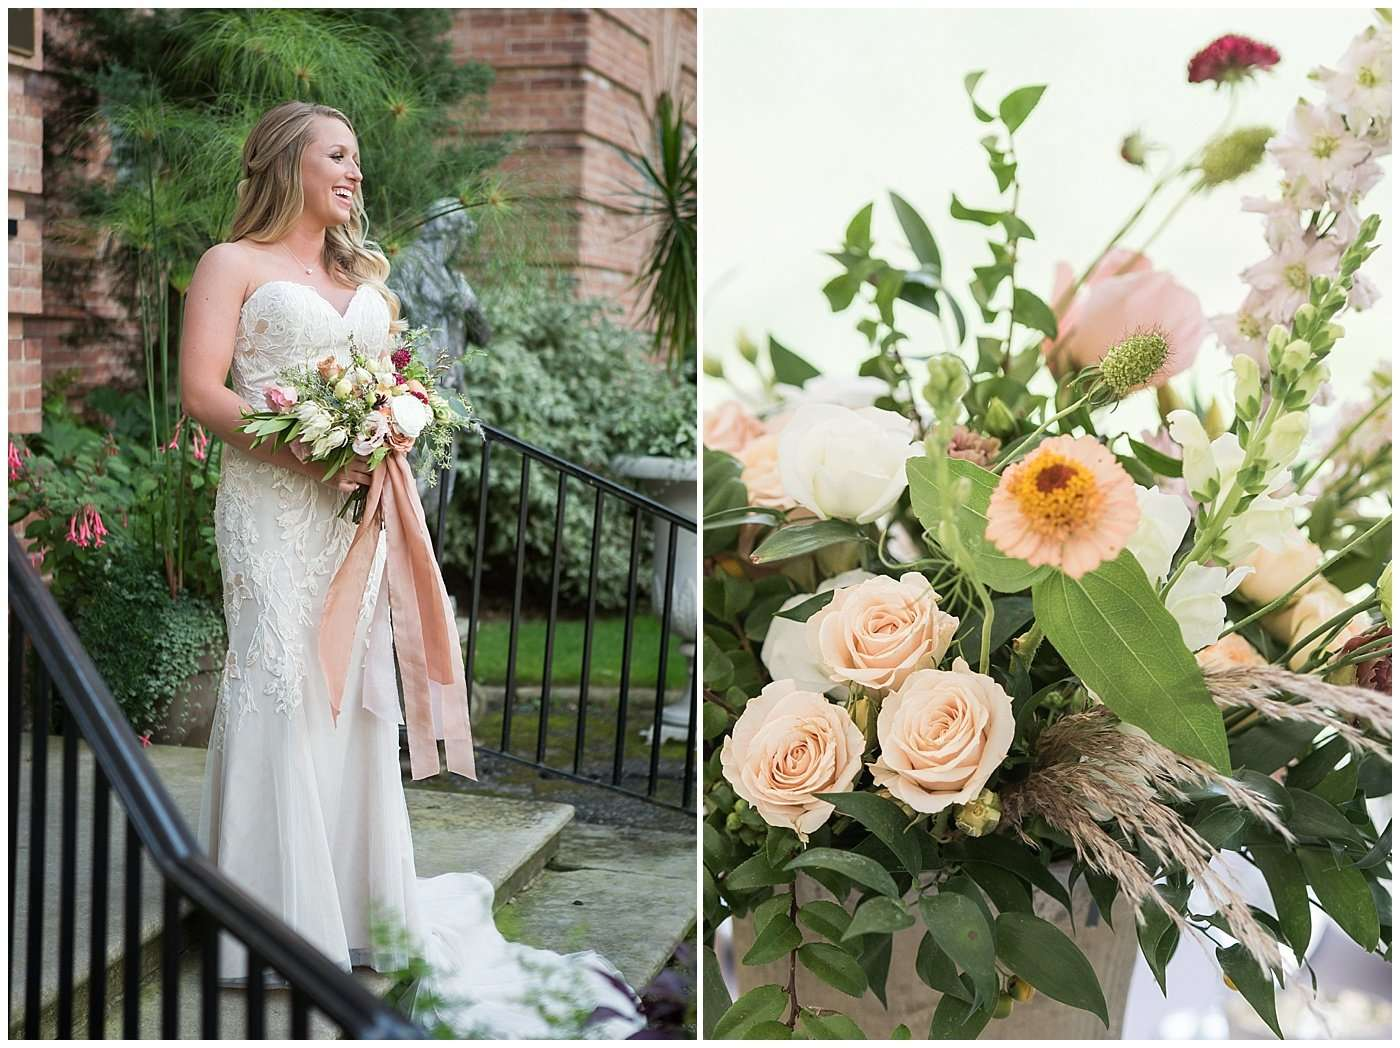 Jake & Abbie | A Swoon-Worthy Wedding at Breathtaking Garden Estate 40